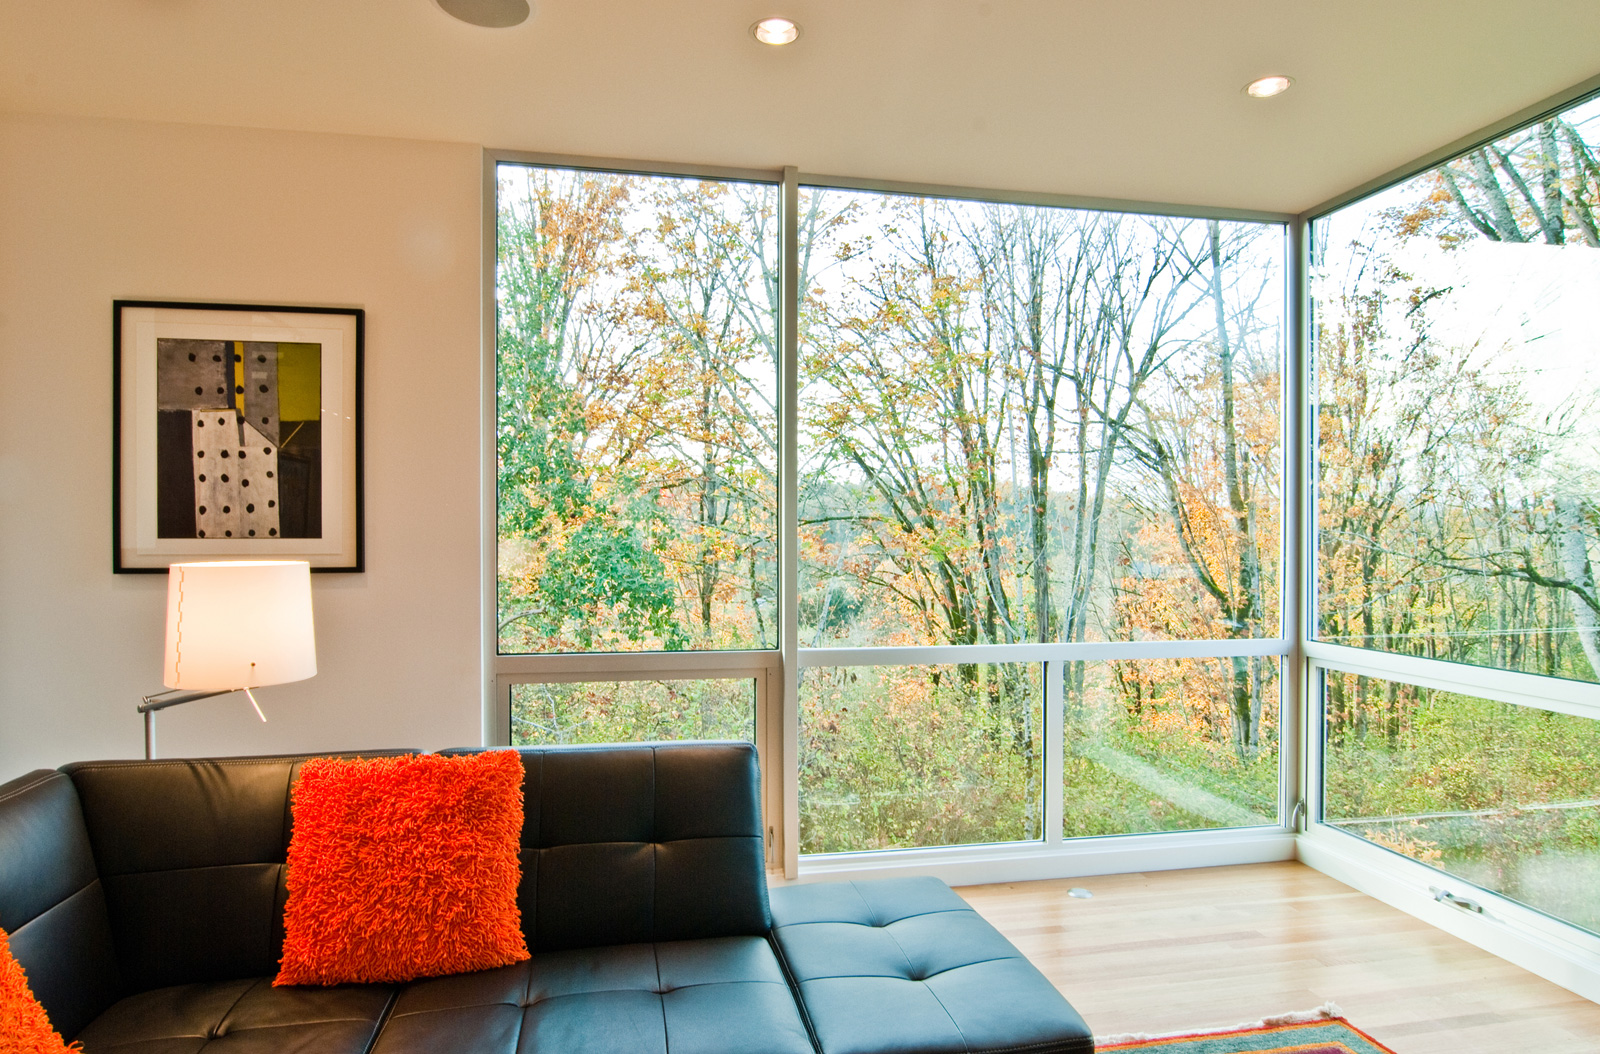 Home replacement window costs energy efficient windows - What are floor to ceiling windows called ...